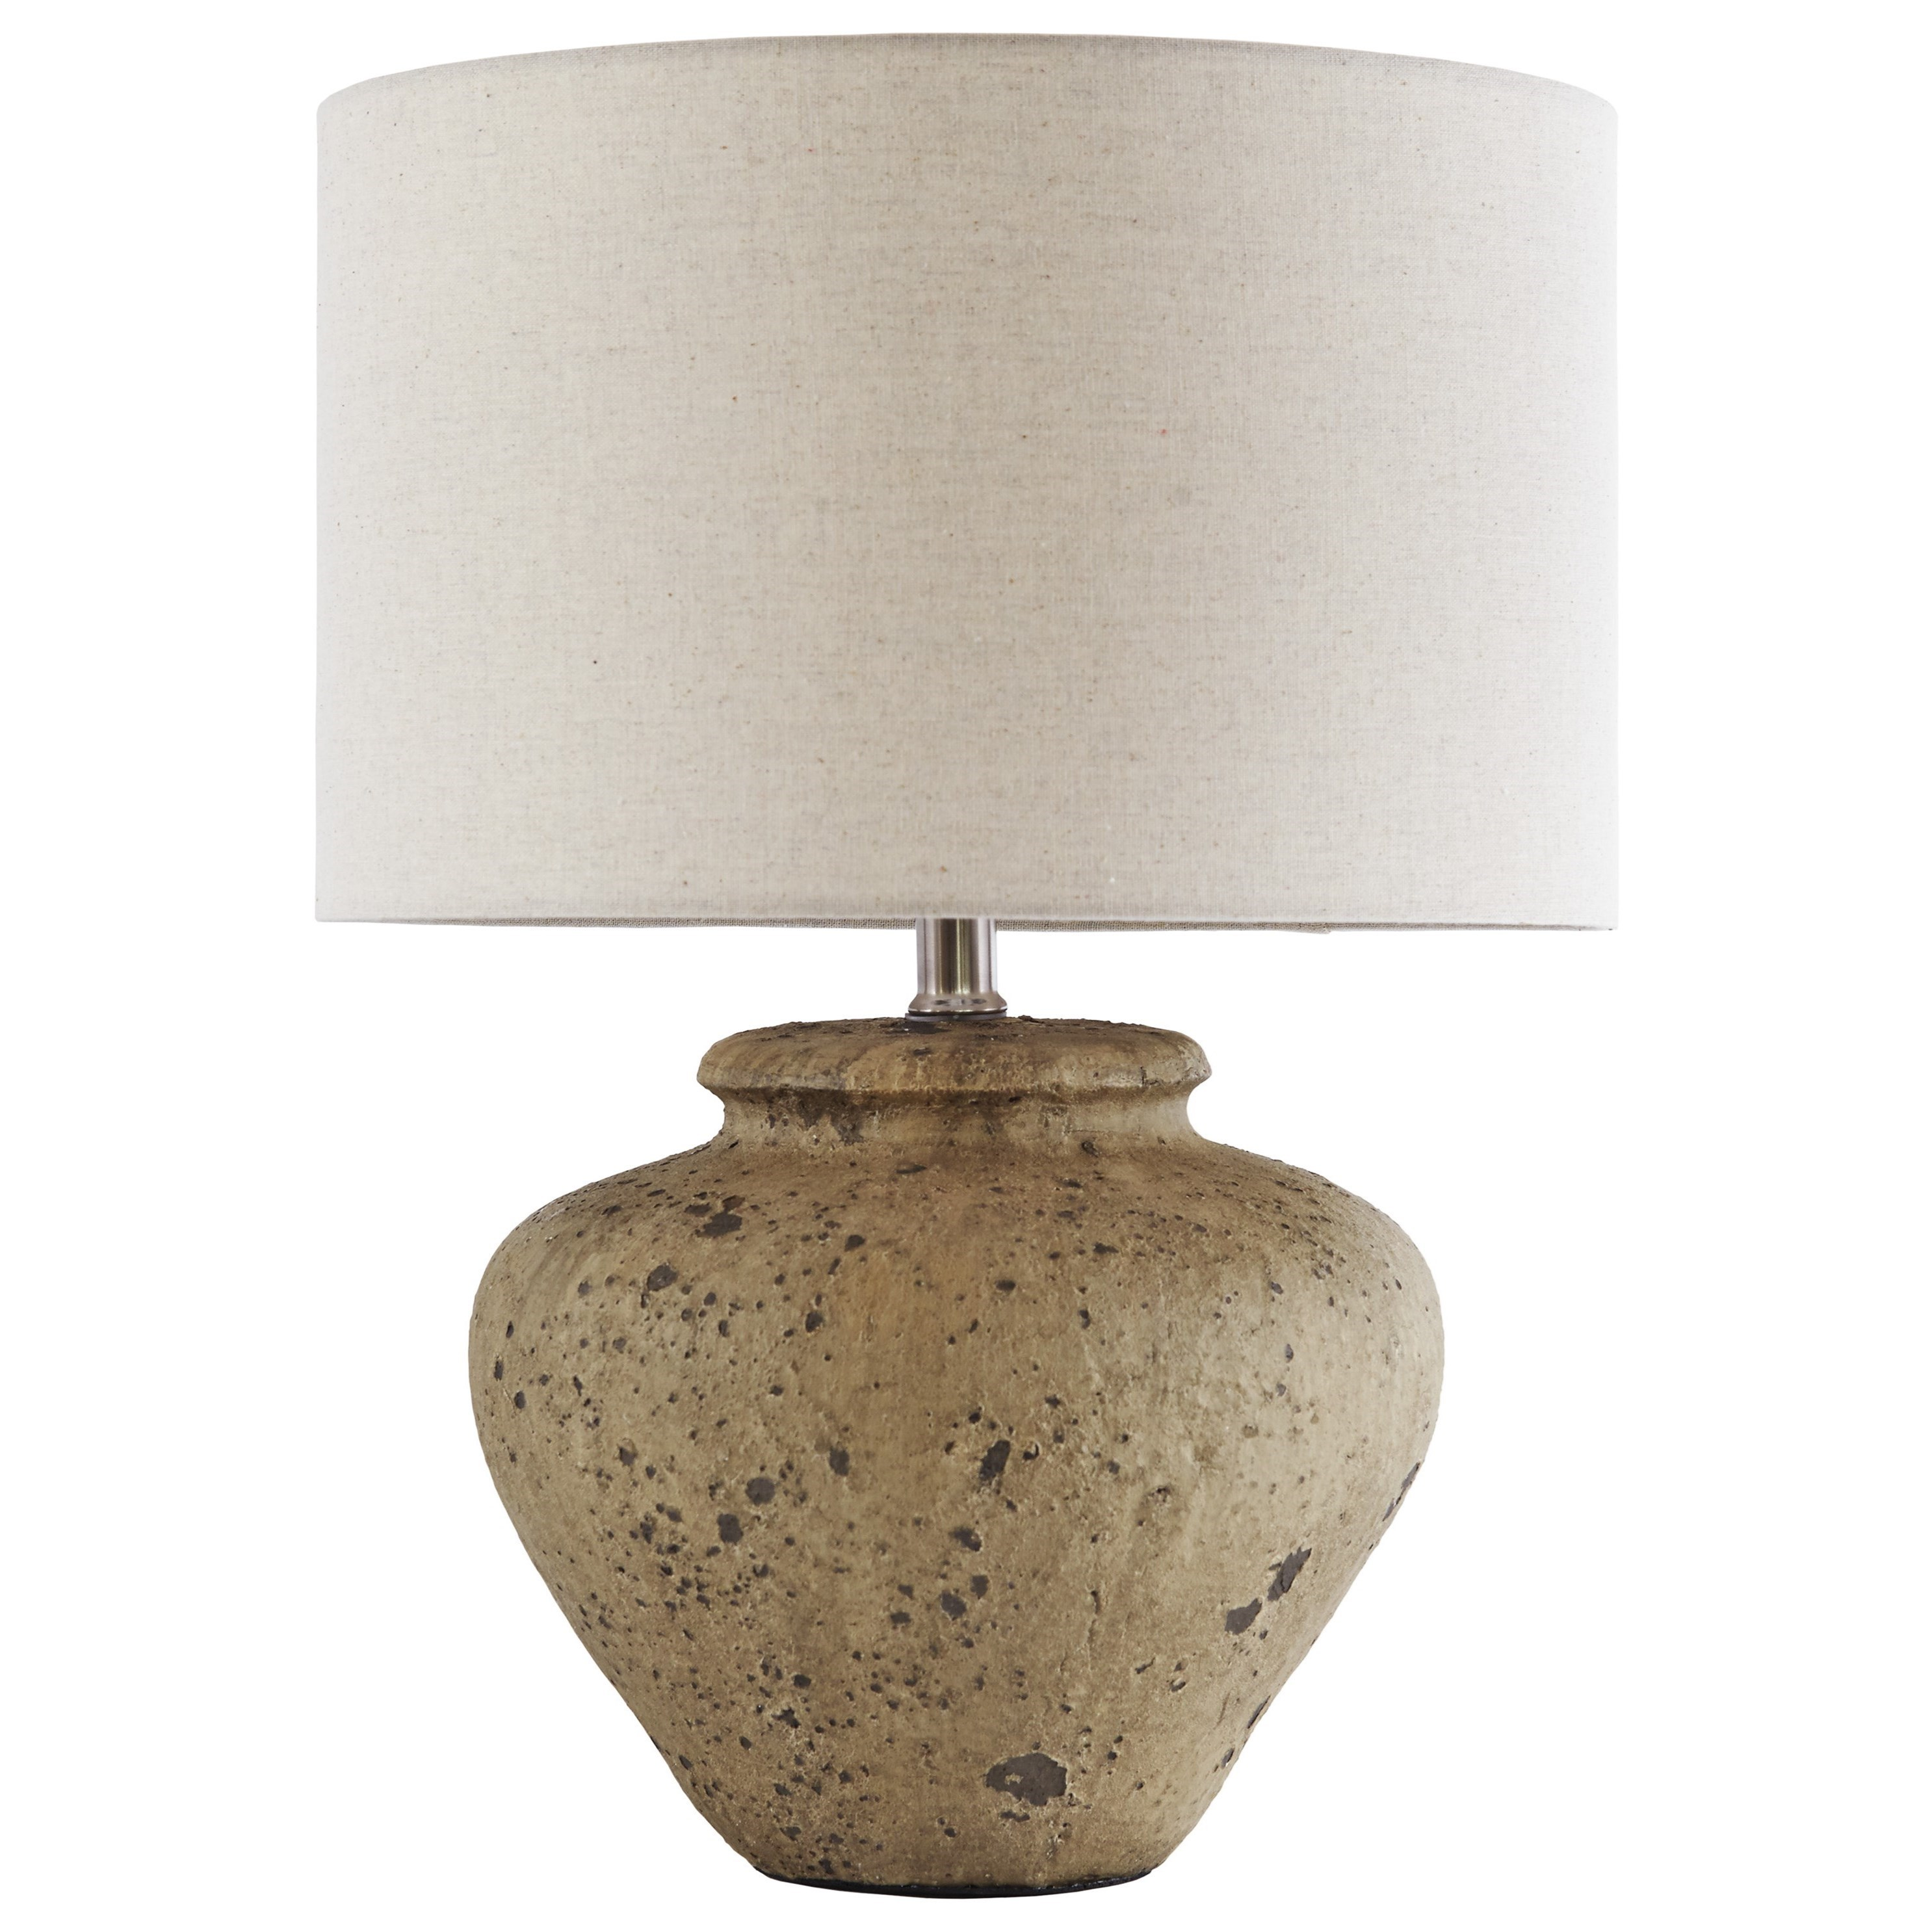 Vintage Table Lamps Lamps Vintage Style Mahfuz Beige Ceramic Table Lamp By Signature Design By Ashley At Rotmans